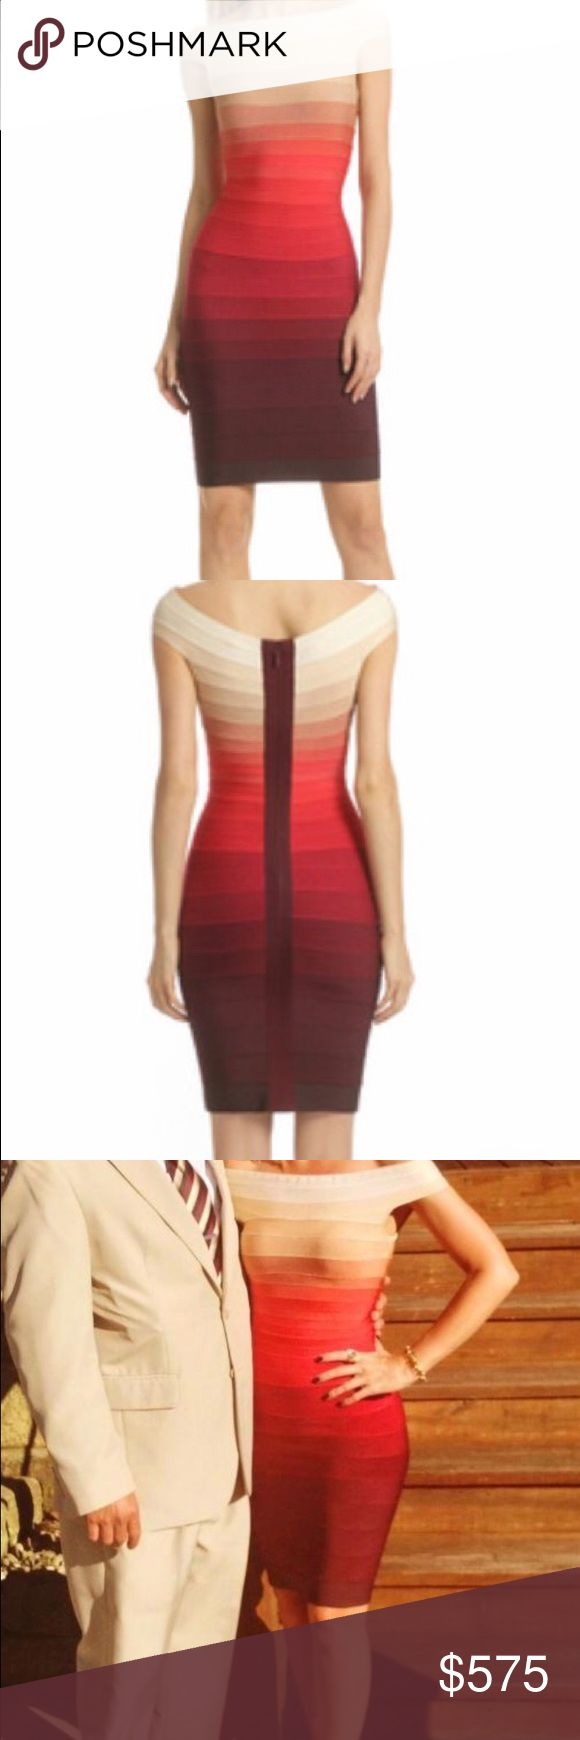 Hervé Legér Volcano Explosion Dress Size Small & Medium Available ...Can Do 500$ On P/P Herve Leger Dresses Midi